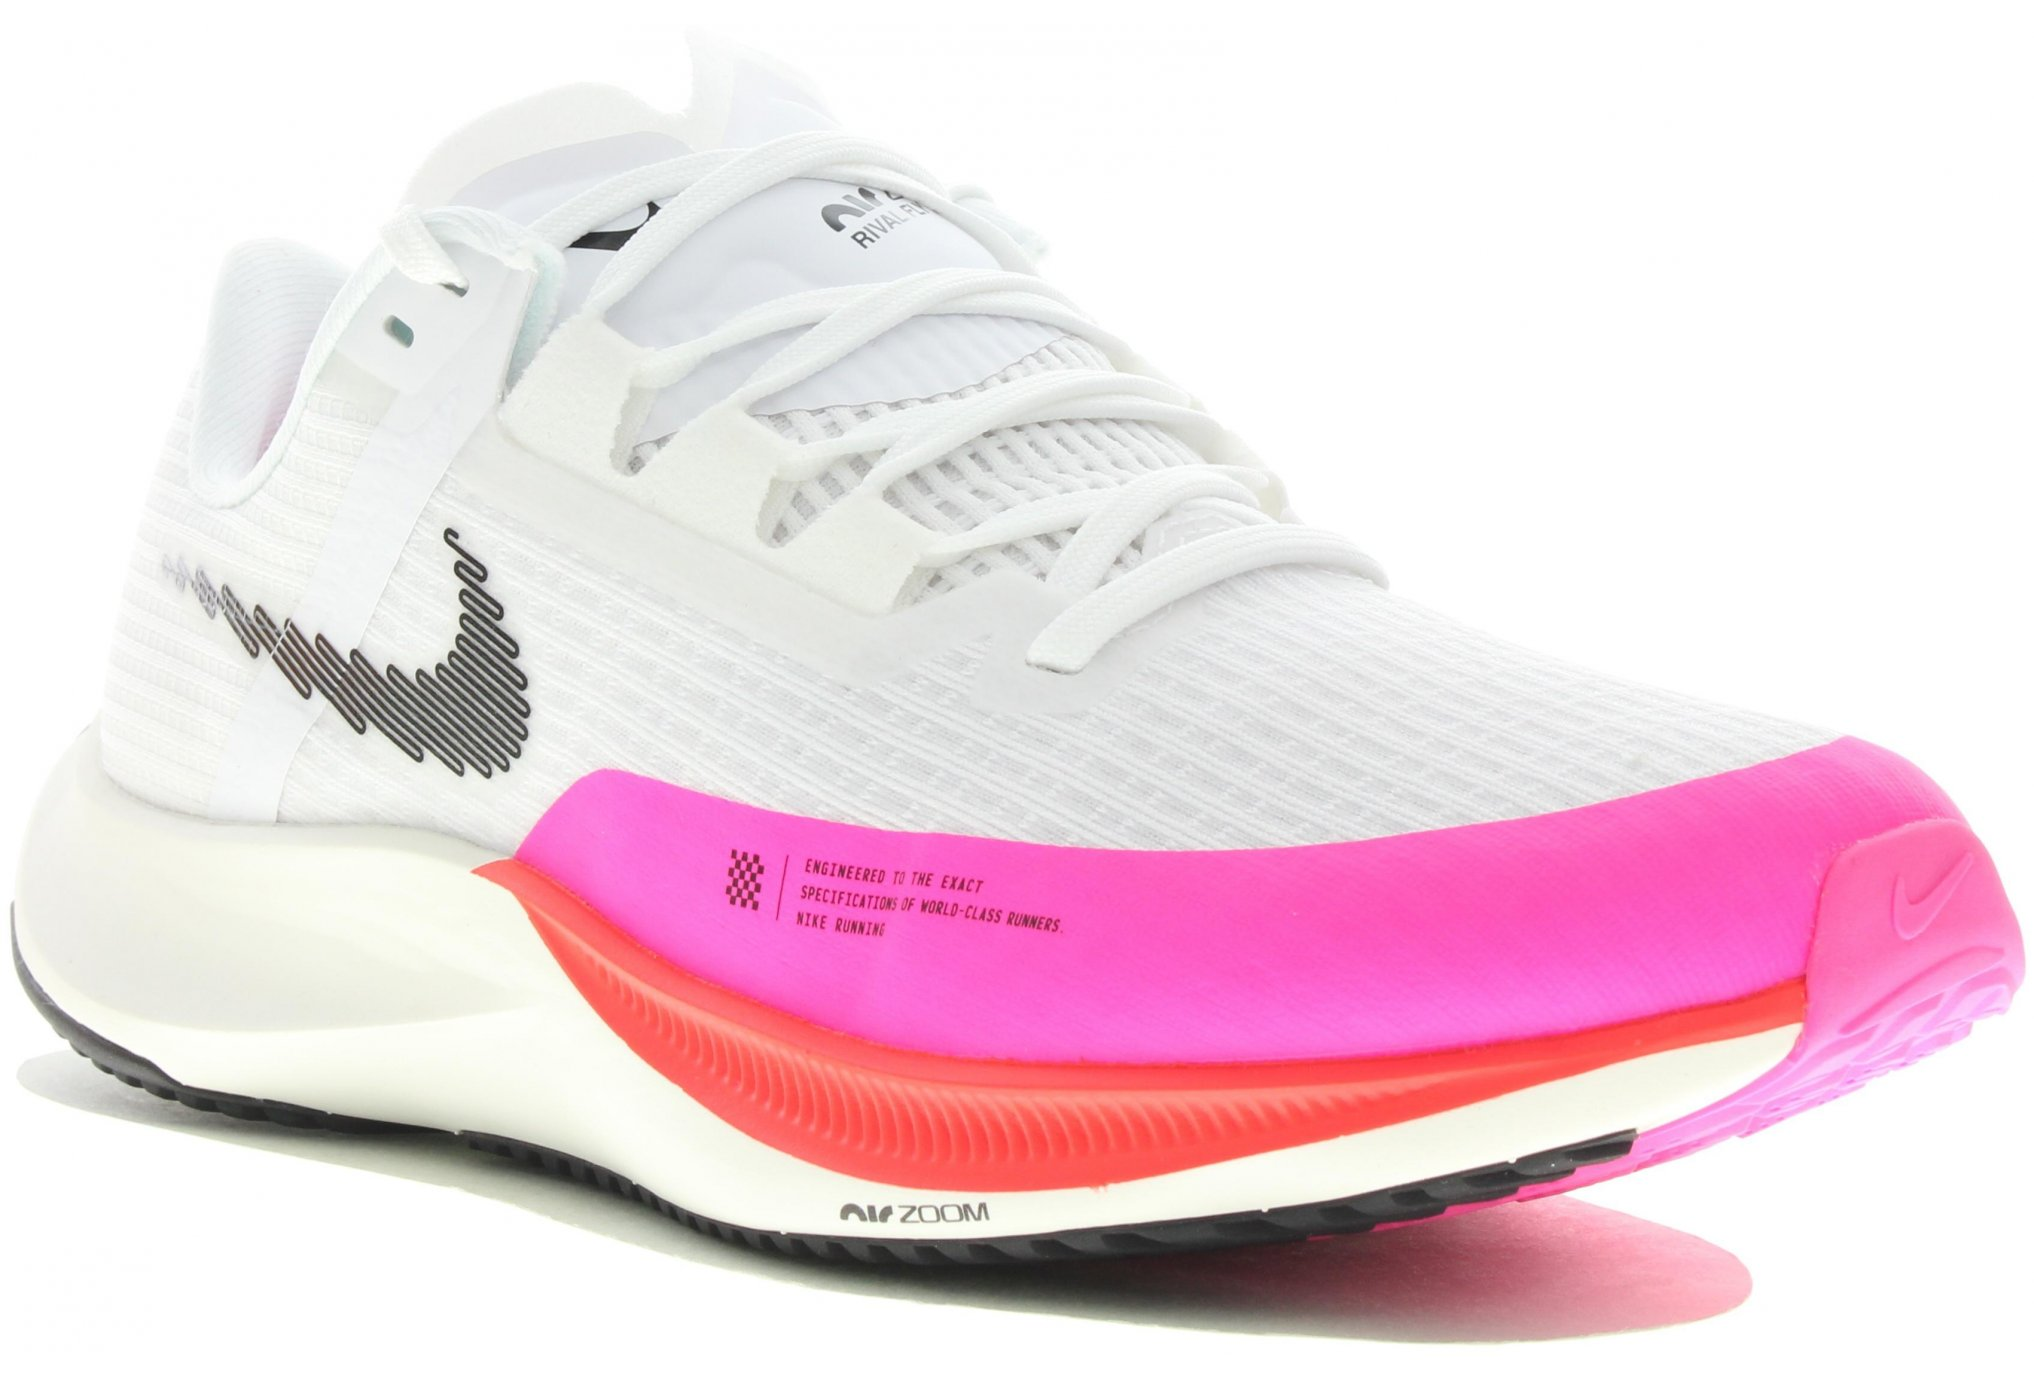 Nike Air Zoom Rival Fly 3 Rawdacious W Chaussures running femme